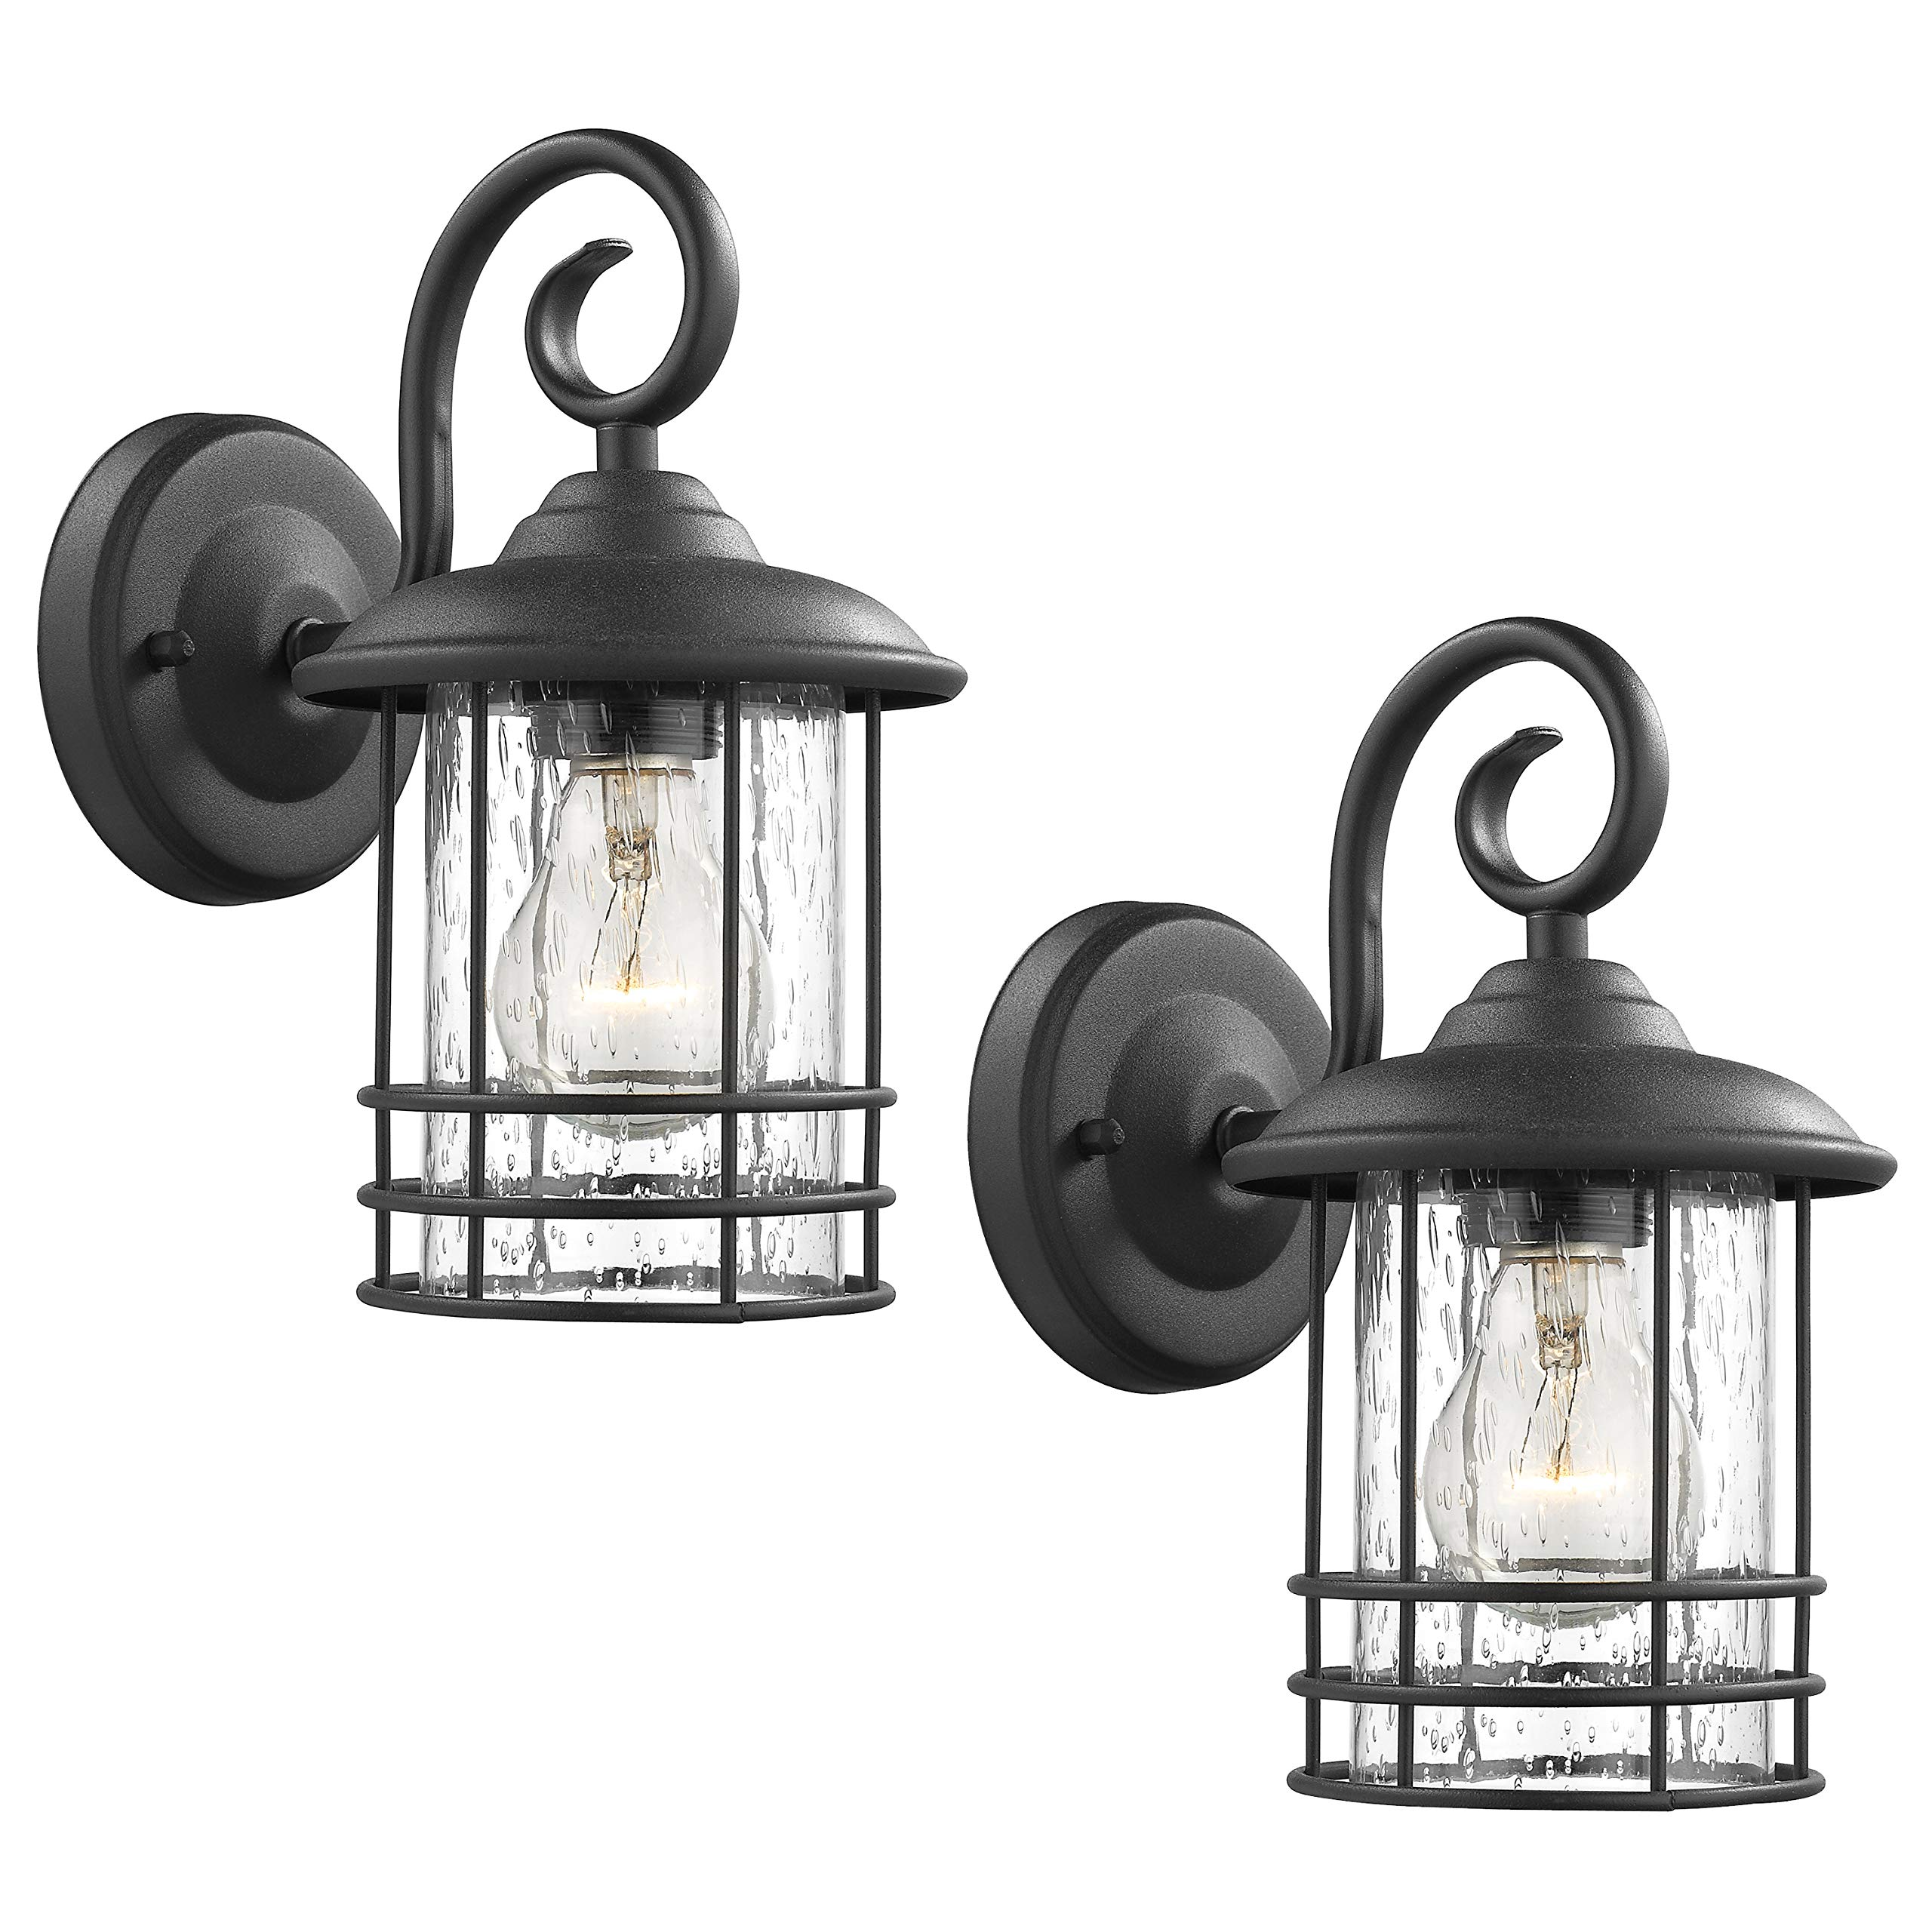 Emliviar 1-Light Outdoor Wall Lantern 2 Pack, Exterior Wall Lamp Light in Black Finish with Clear Seeded Glass -Twin Pack, OS-1803CW1 by EMLIVIAR